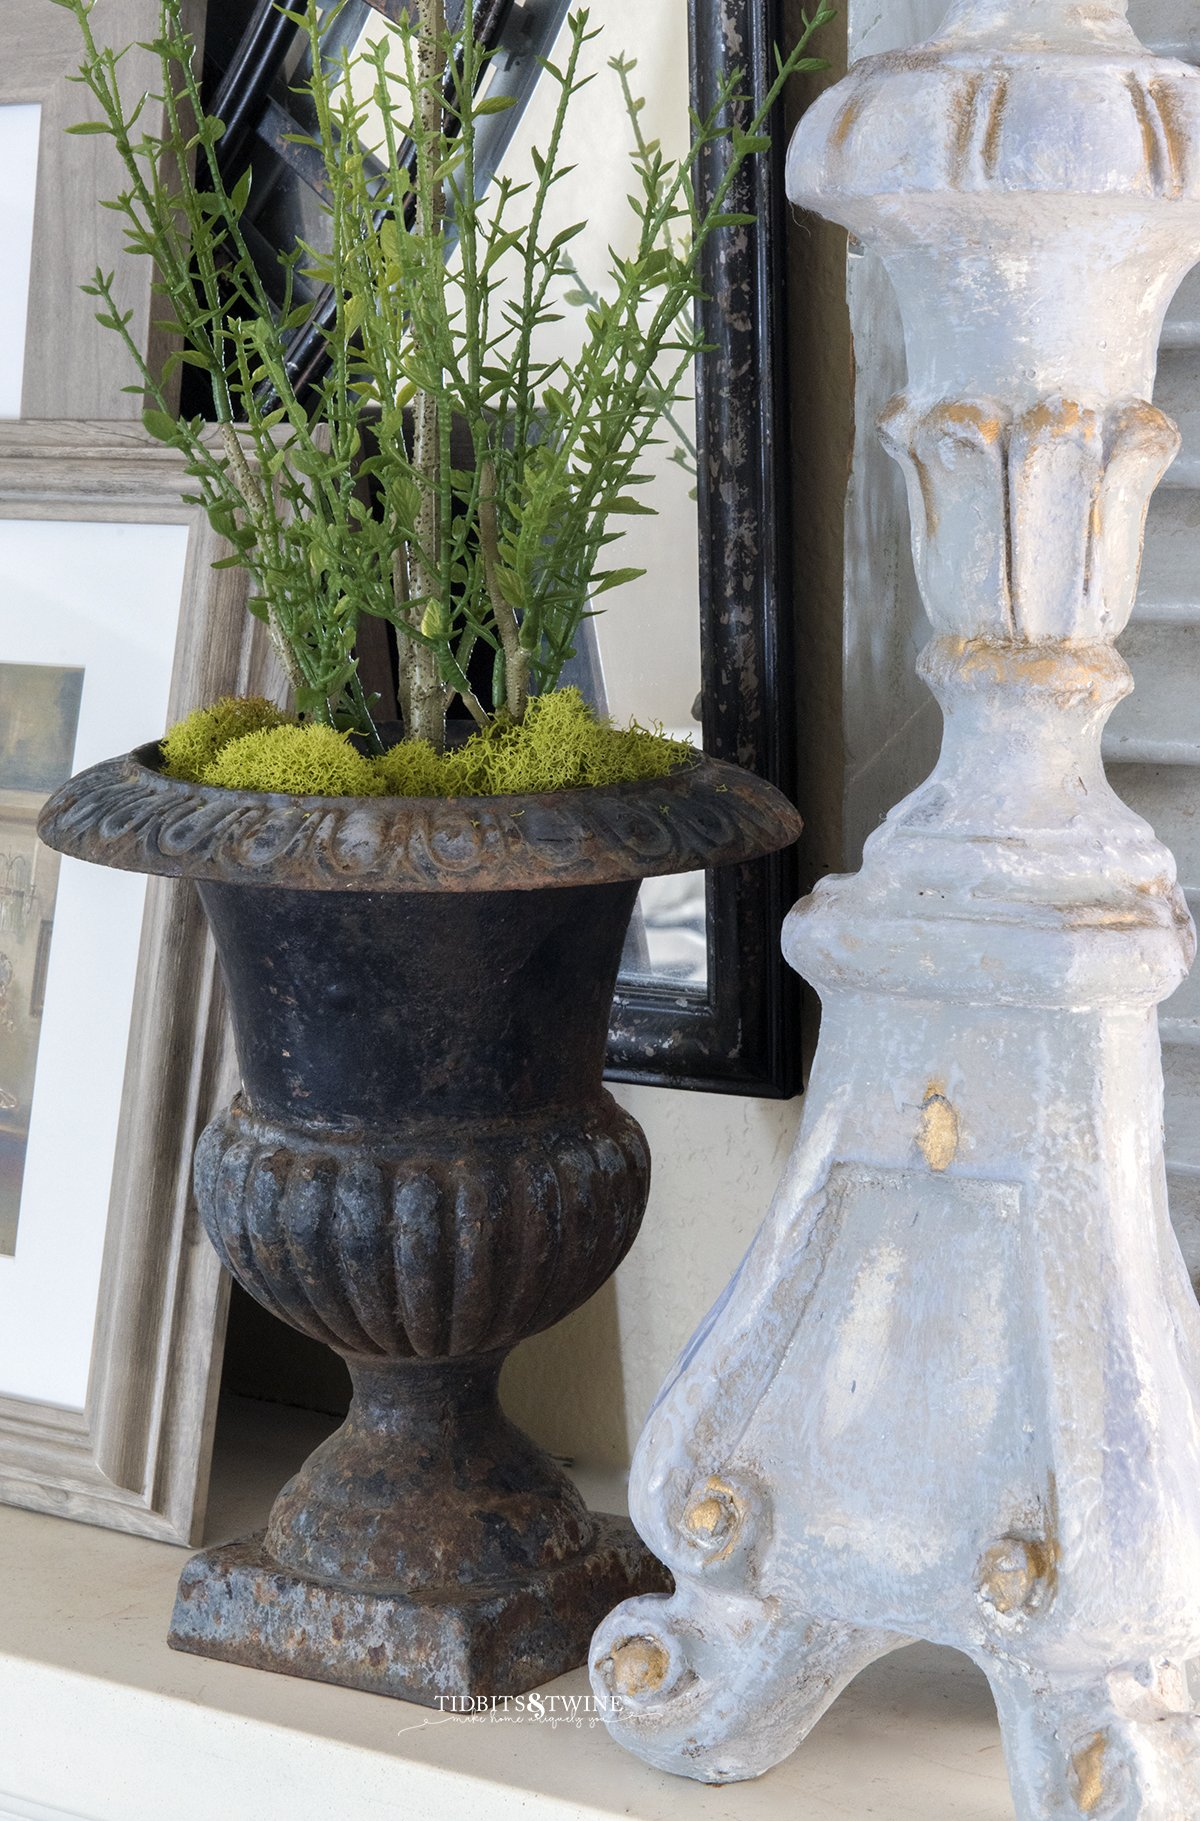 Closeup of antique french metal urn with myrtle topiary inside and green moss at base next to a french candlestick on a mantel